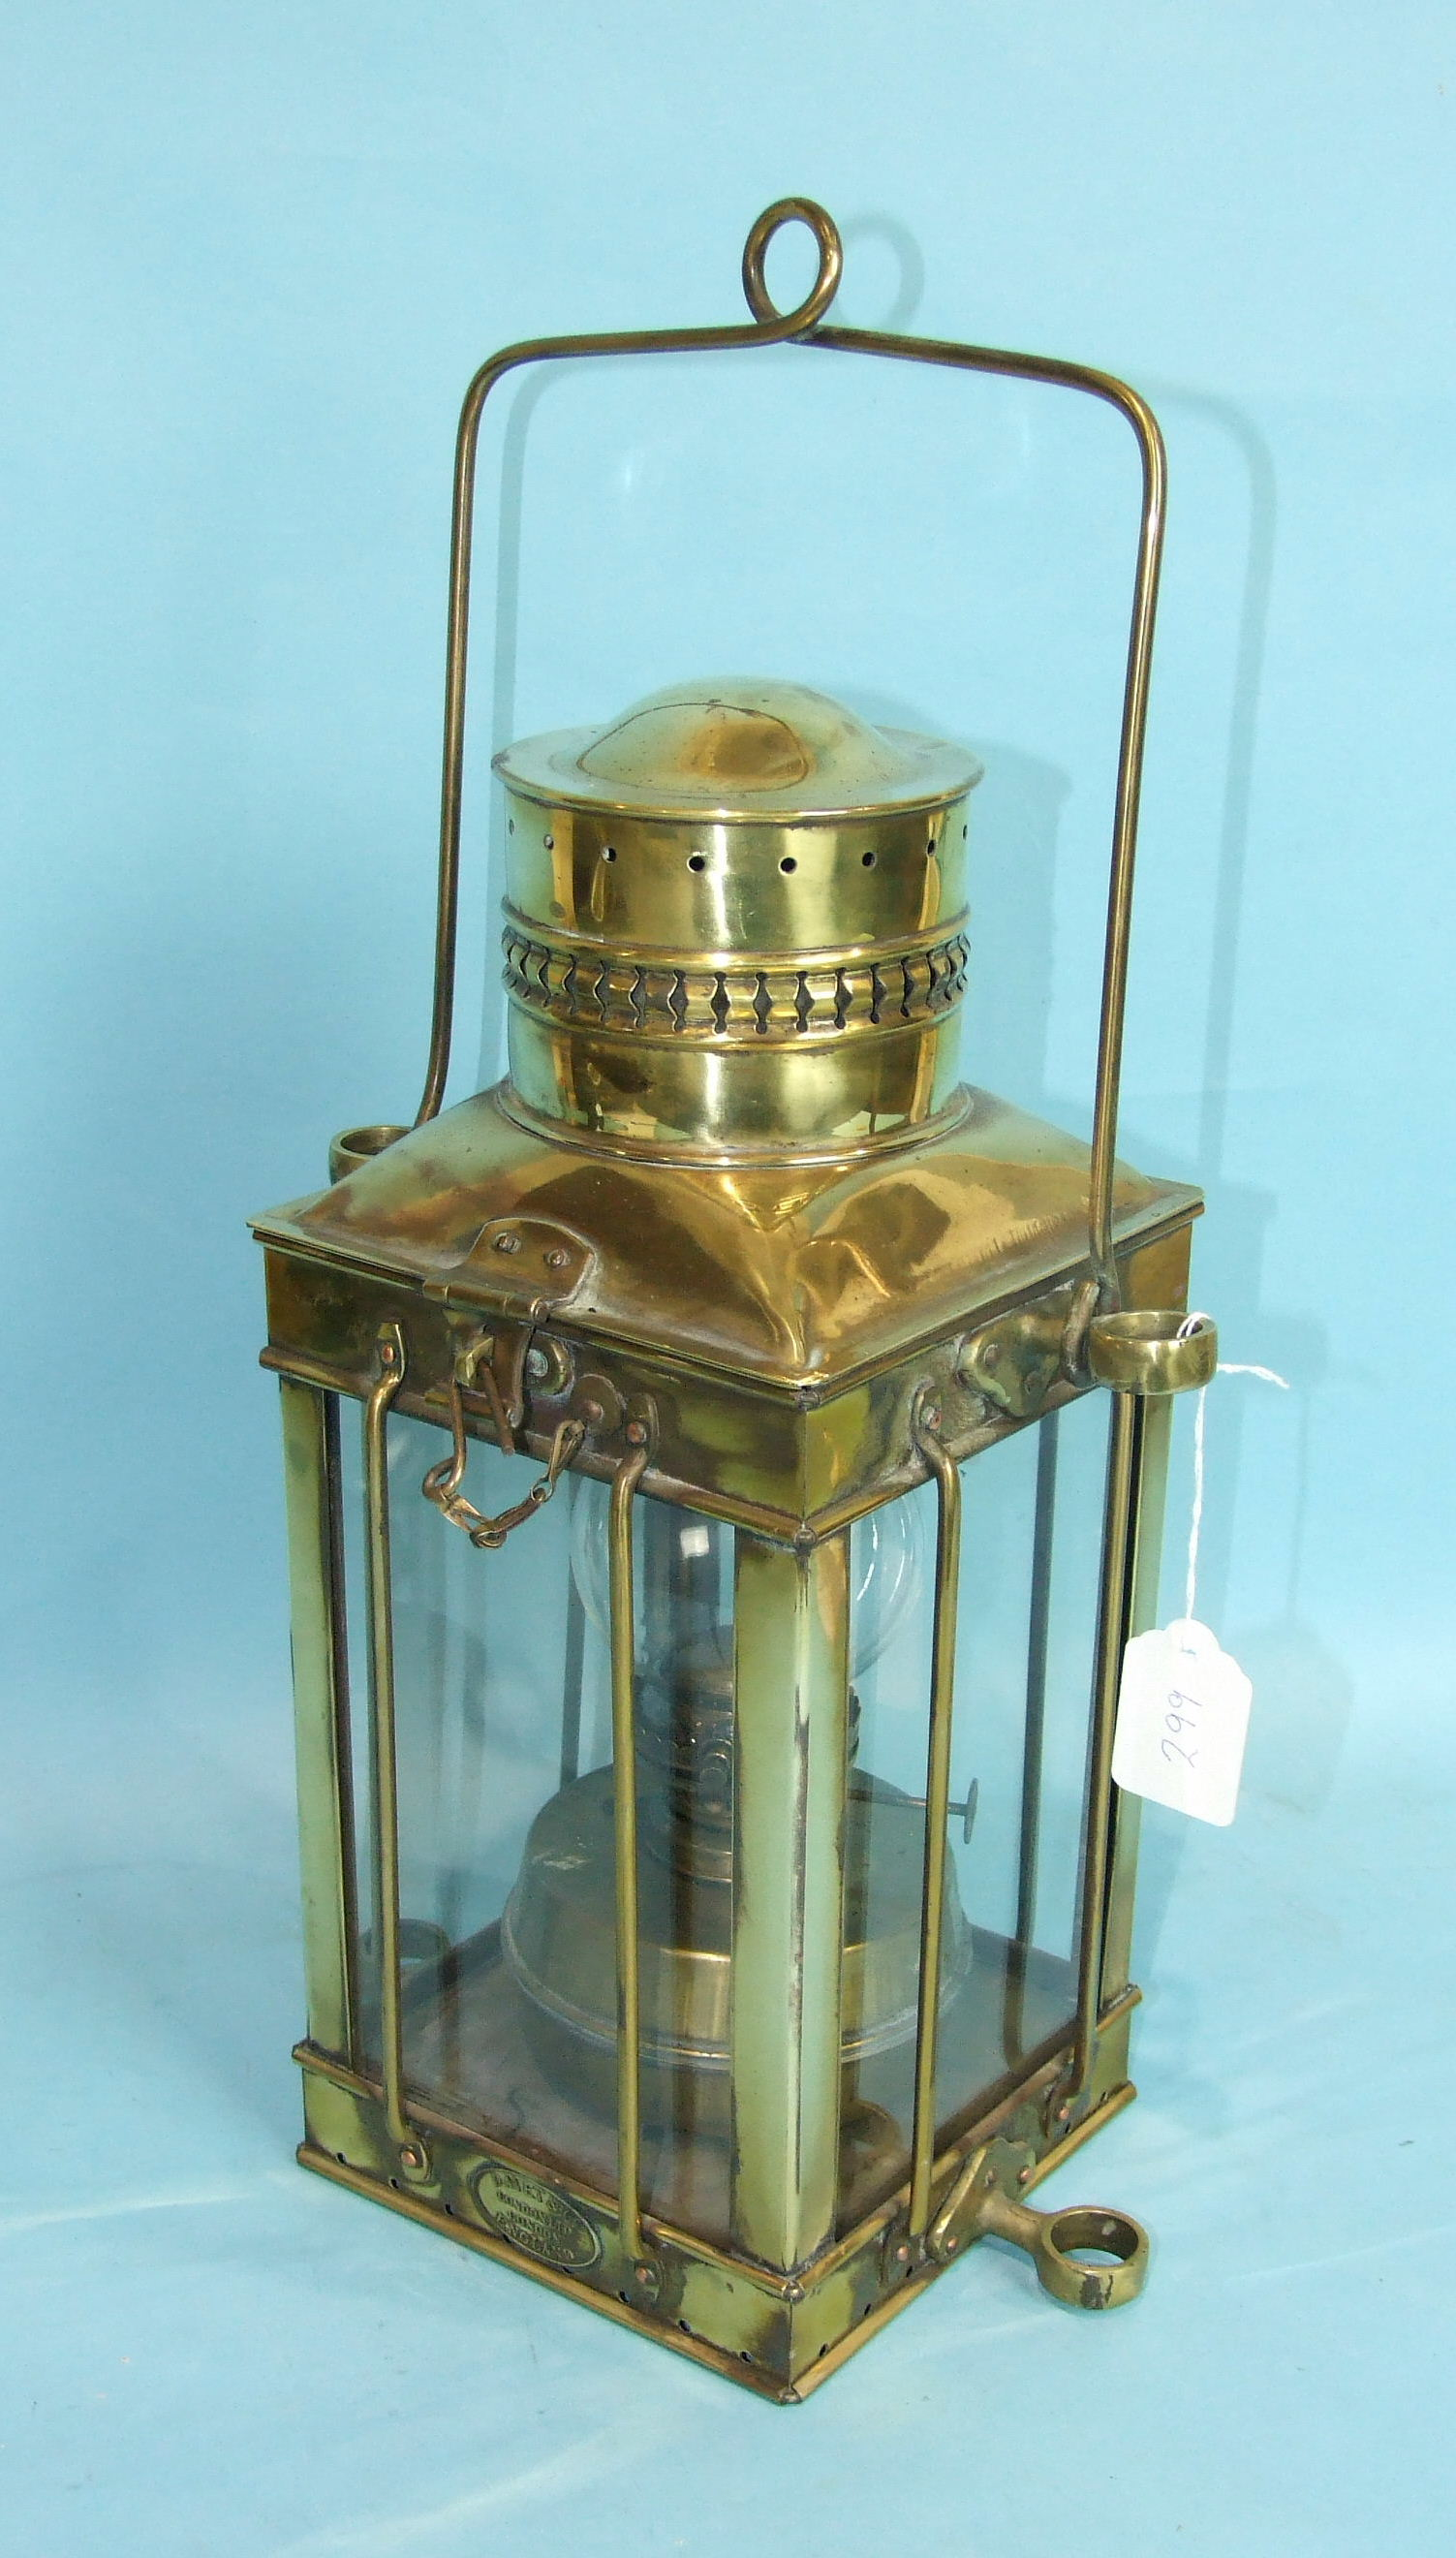 Lot 299 - A brass hanging four-glass lantern by Davey & Co, London, Ltd, complete with paraffin burner, 48cm